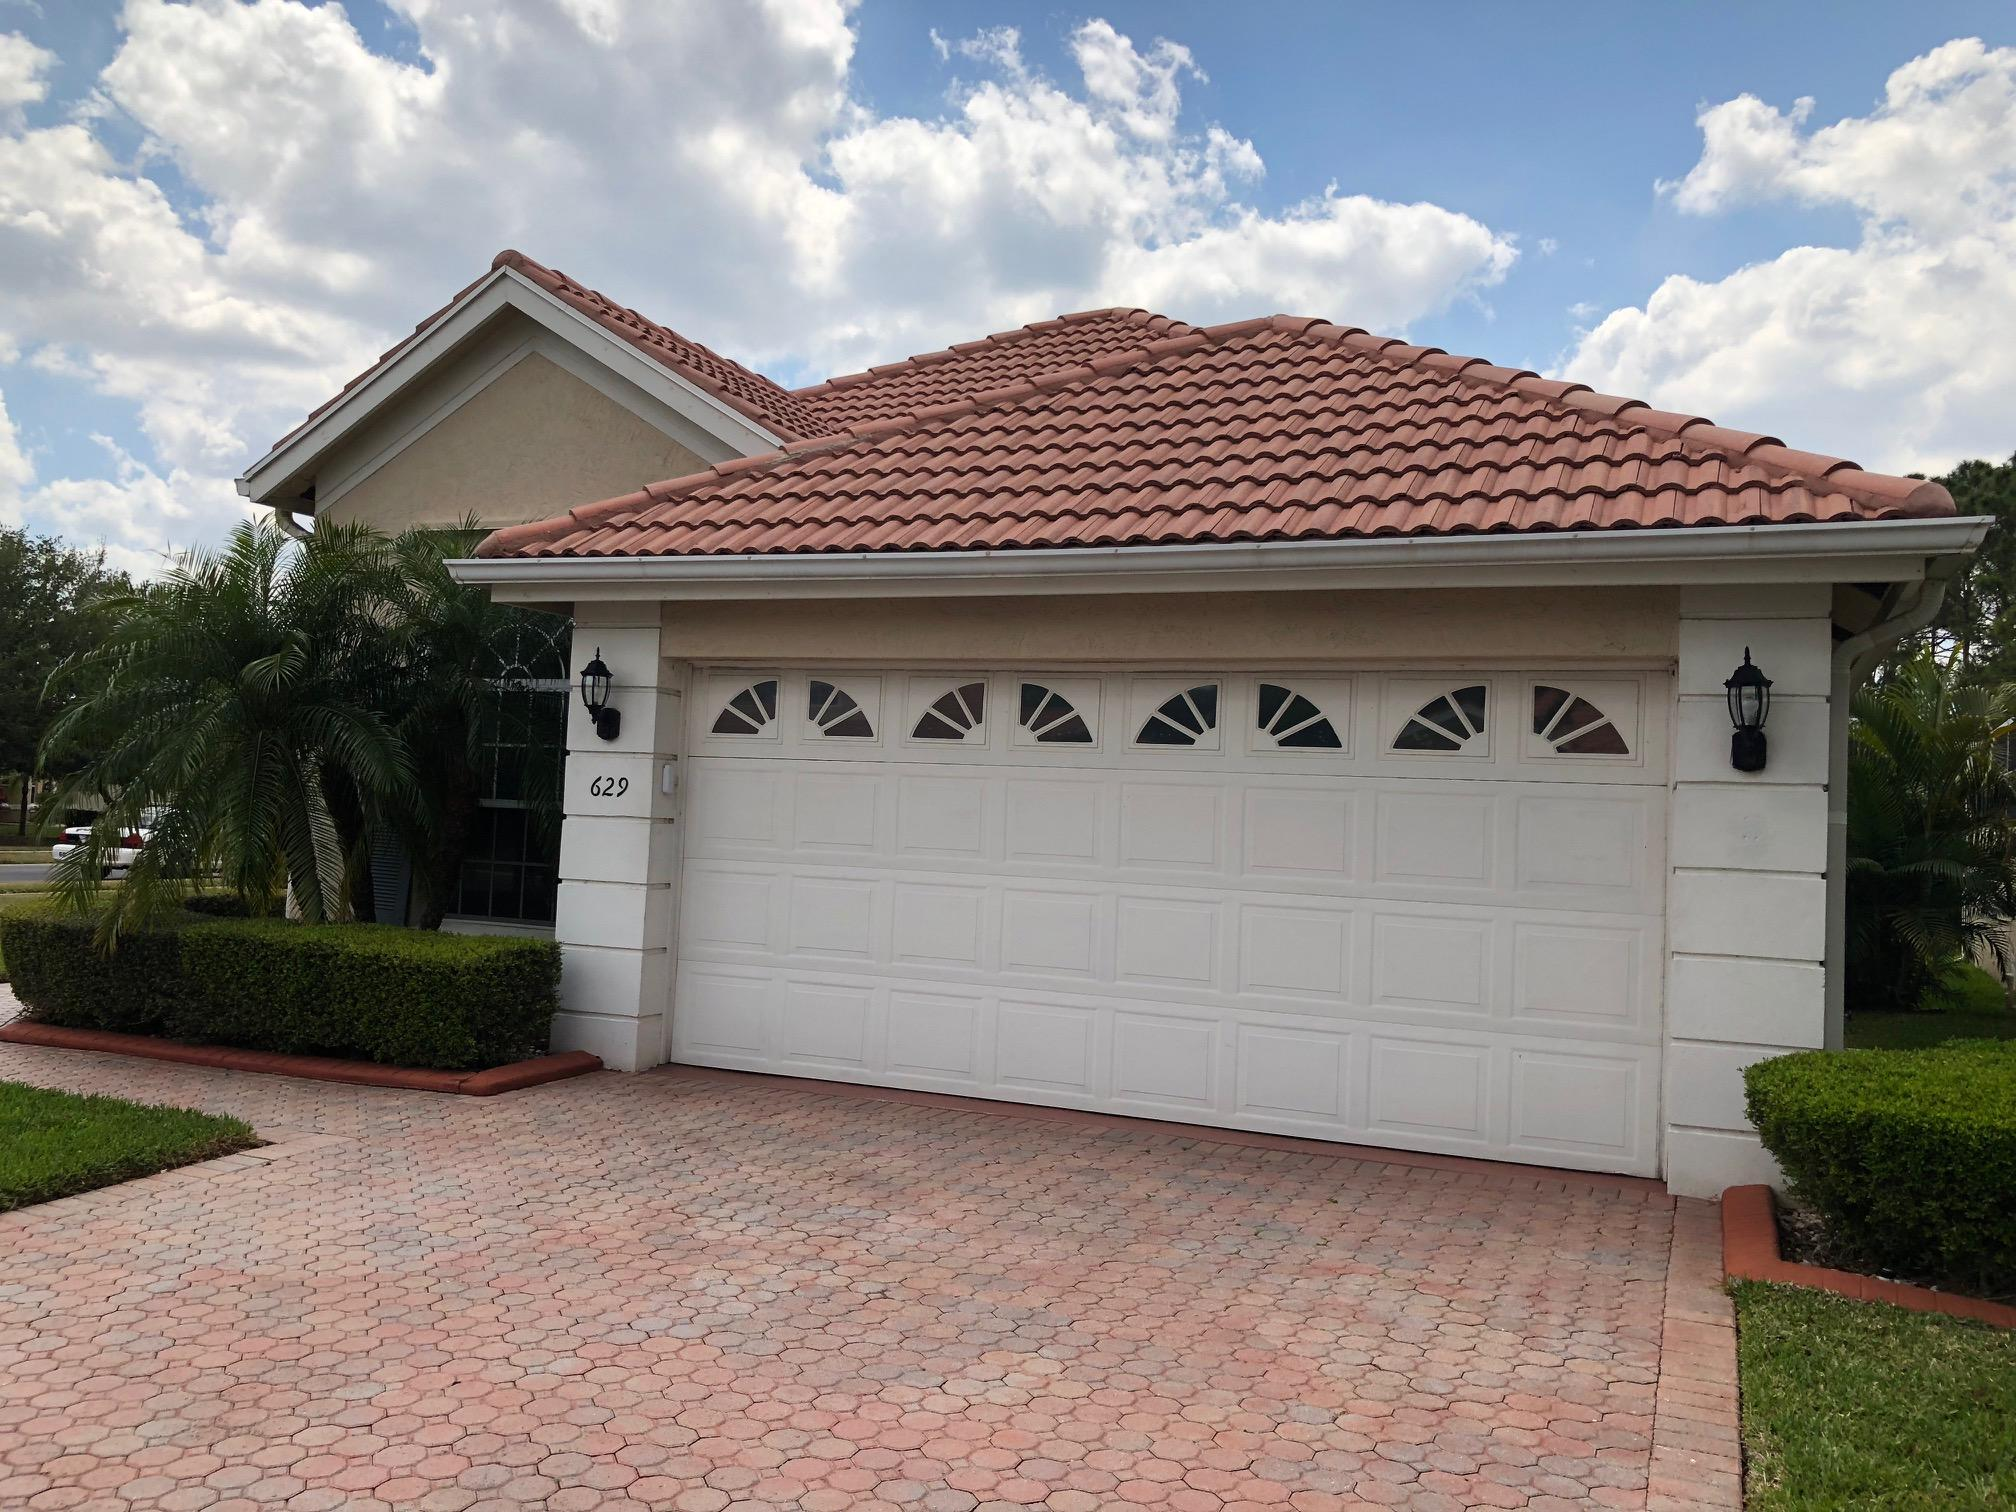 Details for 629 Andros Circle Sw, Port Saint Lucie, FL 34986